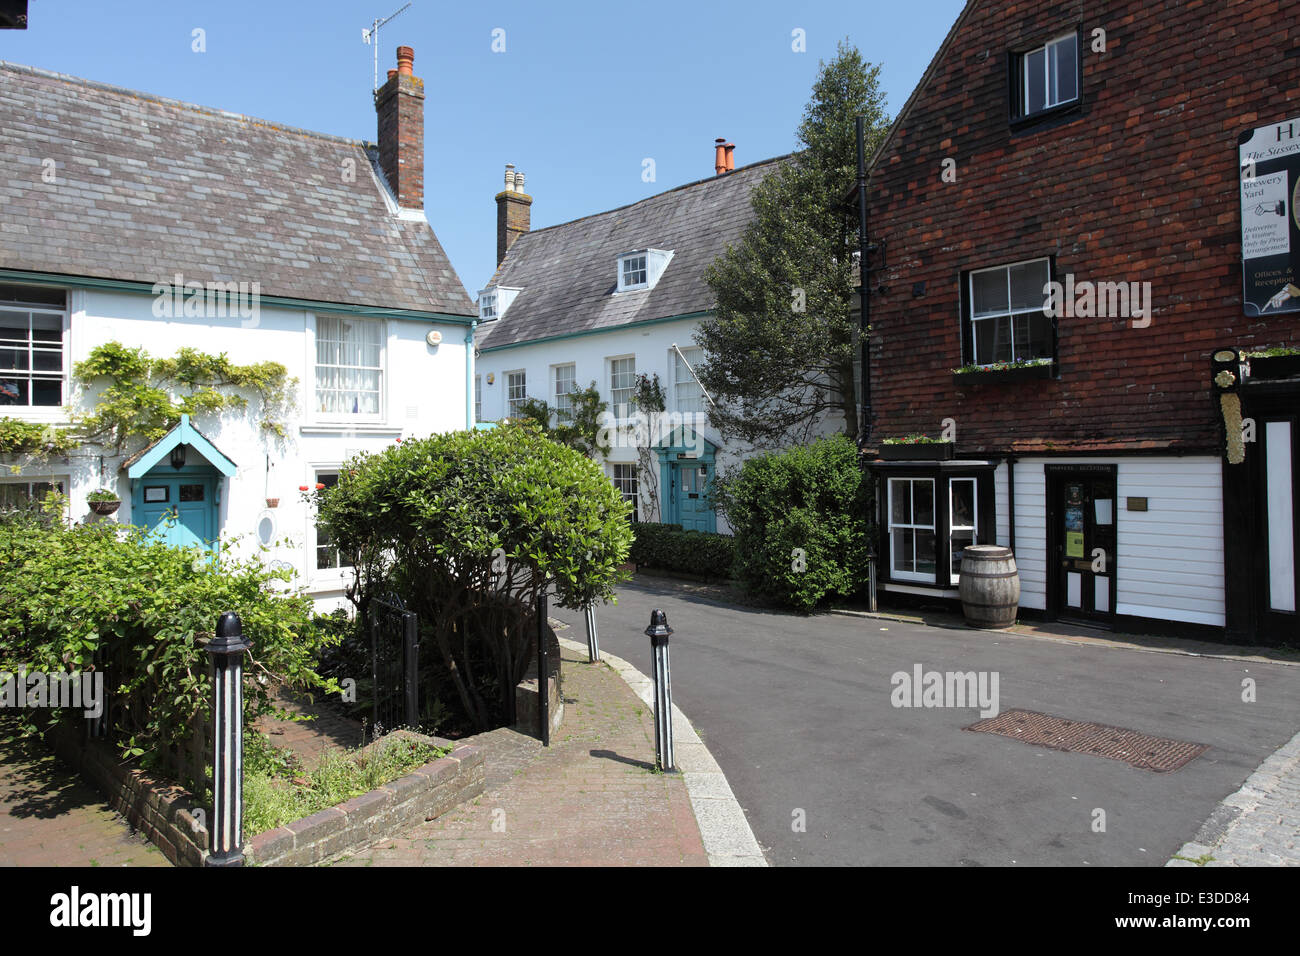 Grade II houses dating to the mid 18th century, lewes - Stock Image